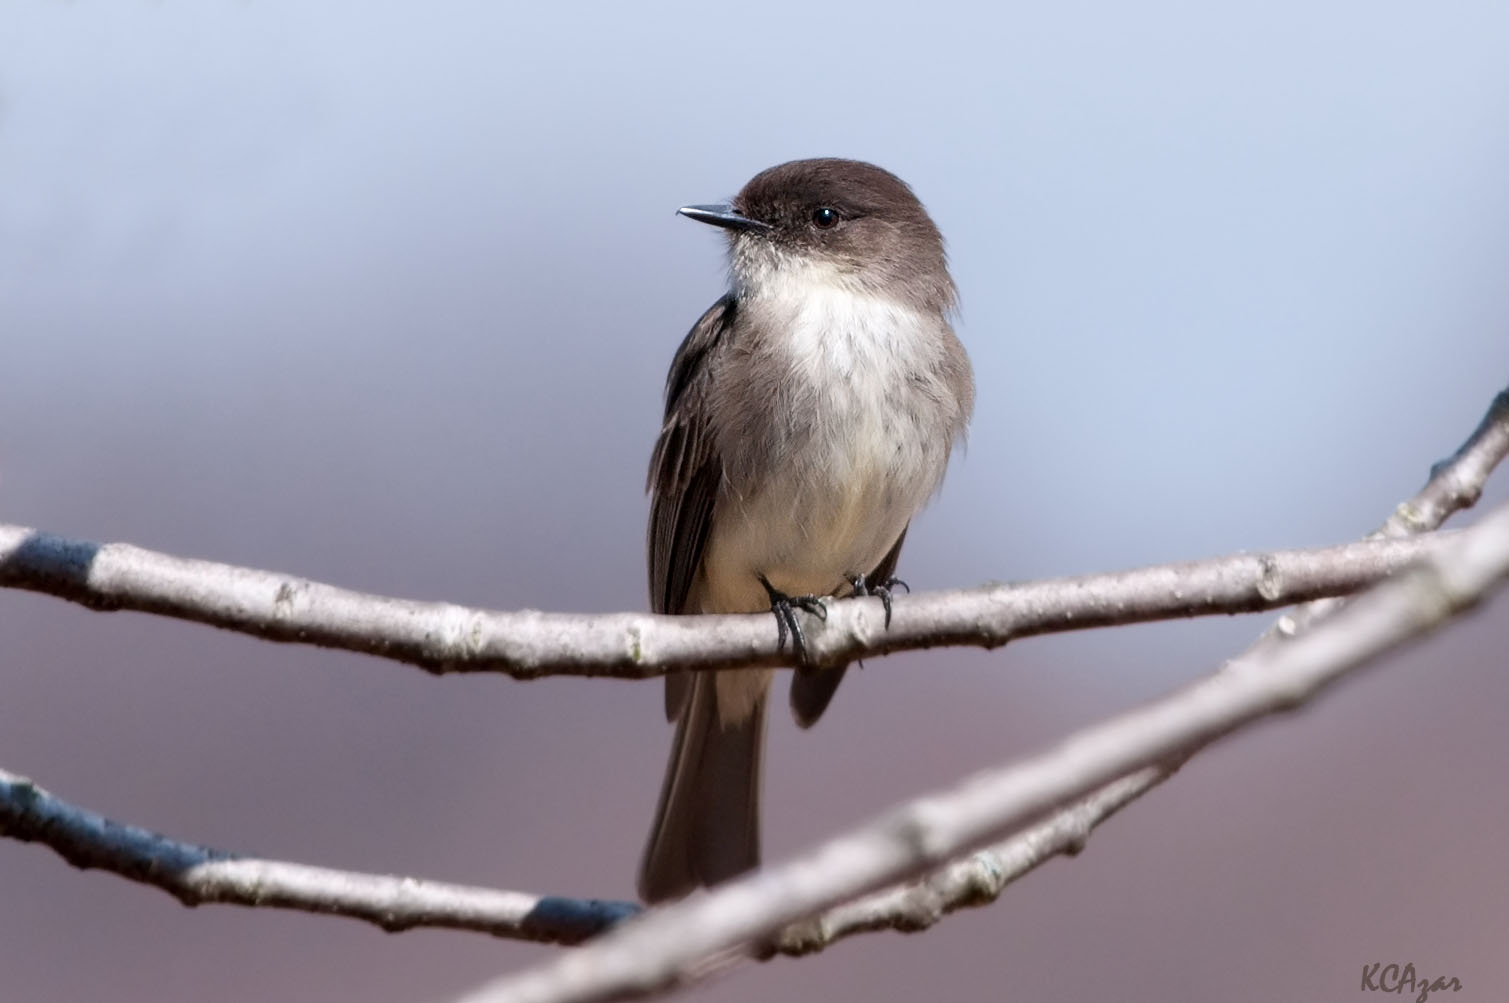 """- Eastern Phoebe (Sayornis phoebe)Eastern Phoebes live in woods near water and nest on many man-made structures. Their diet is mainly insects and sometimes fruit. This was the first species of bird to be banded in North America. They usually weigh 0.5-0.6 oz. and have a wingspan of 10.2-11 in. Eastern Phoebes say their name """"fee-bee."""" They are protected on the US Migratory Bird lists.Photo Credits: Kelly Colgan Azar"""